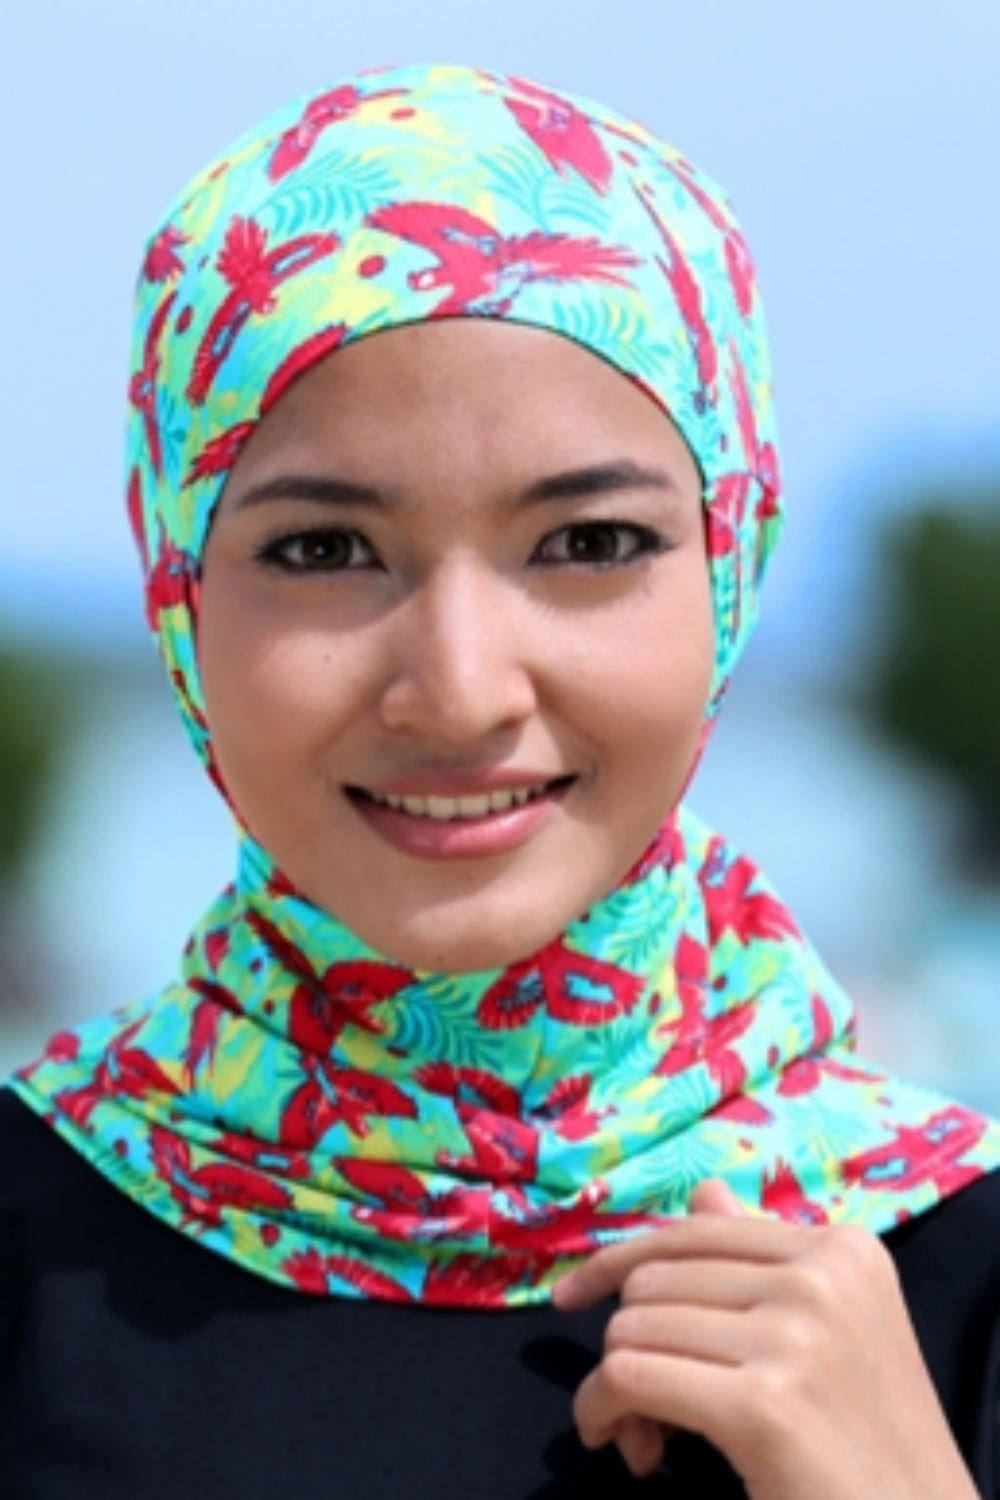 images Sports Hijabs: The High Street Fashion Brand Transforming Muslim Women's Lives